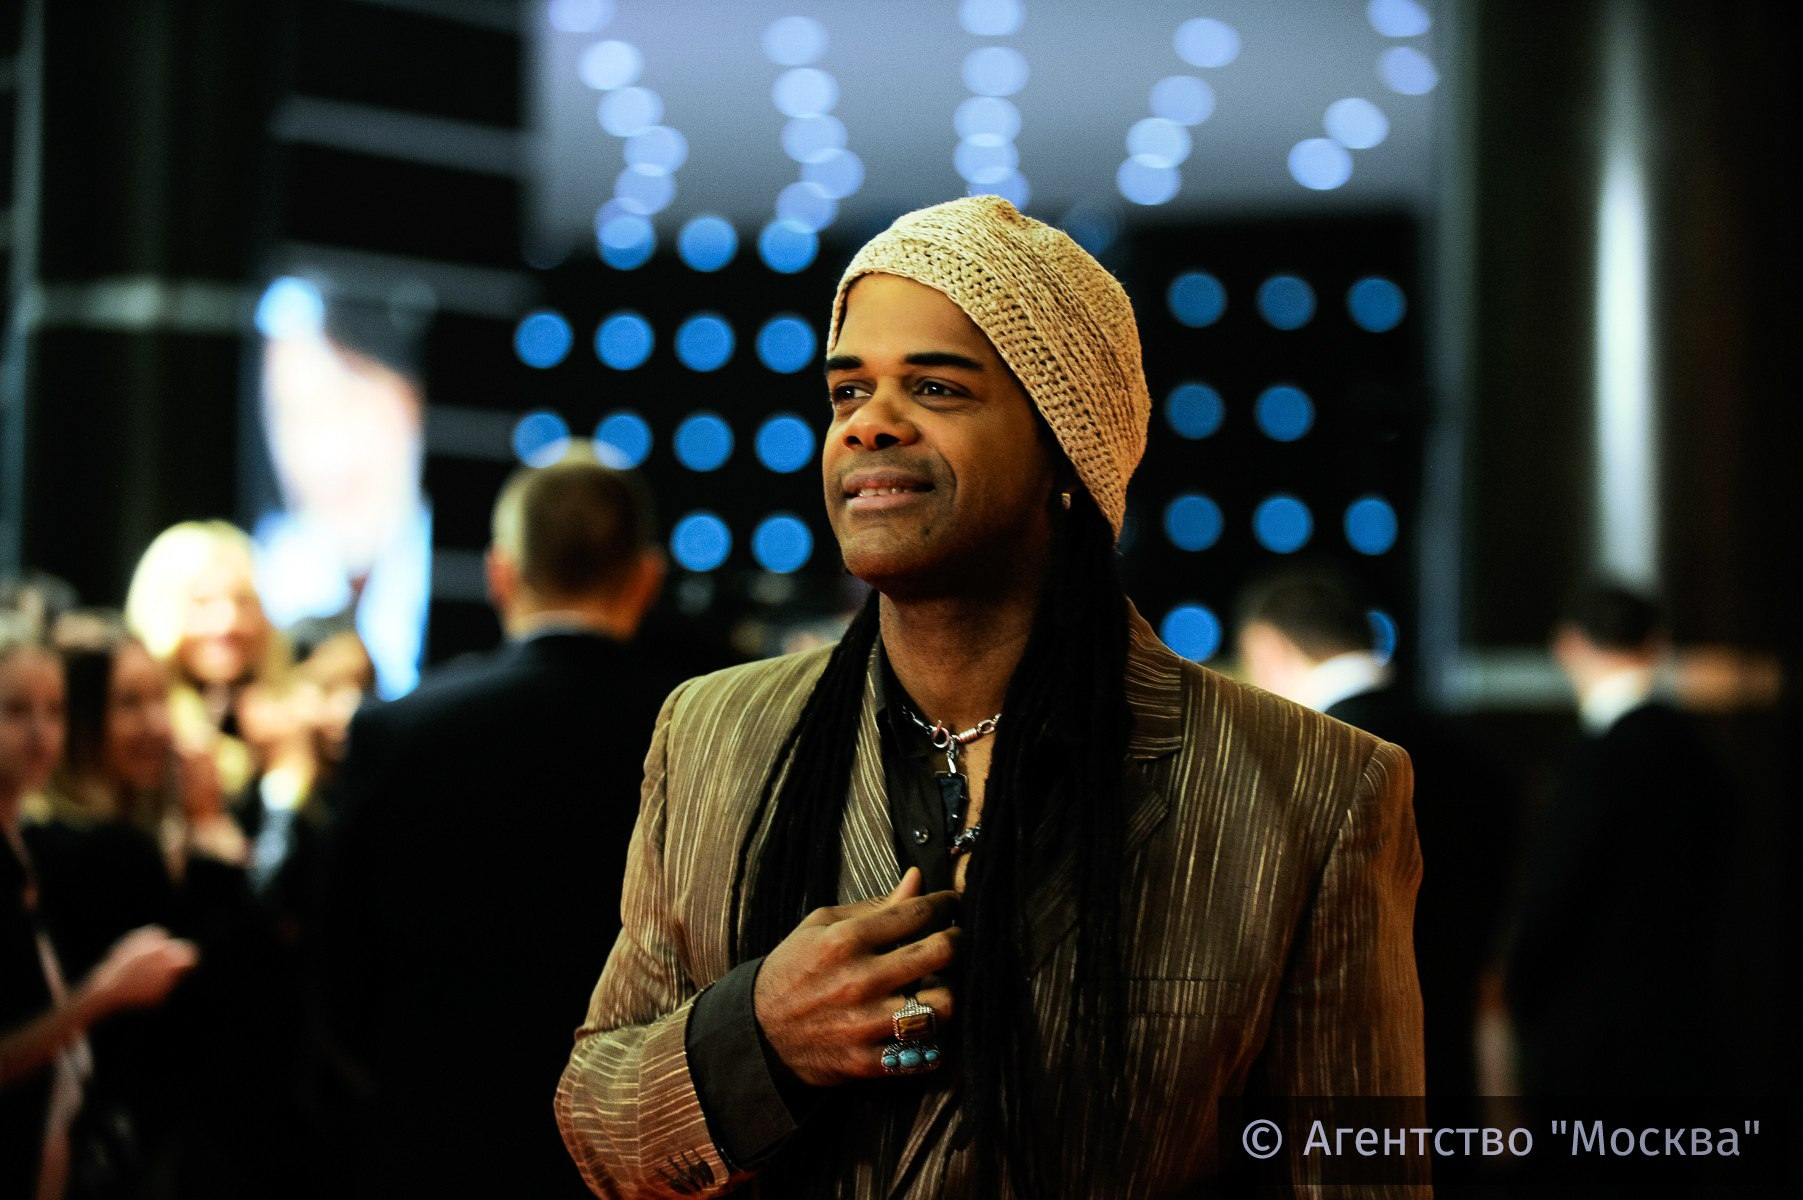 Russian Music Awards, Moscow  (10.12.15) (11)